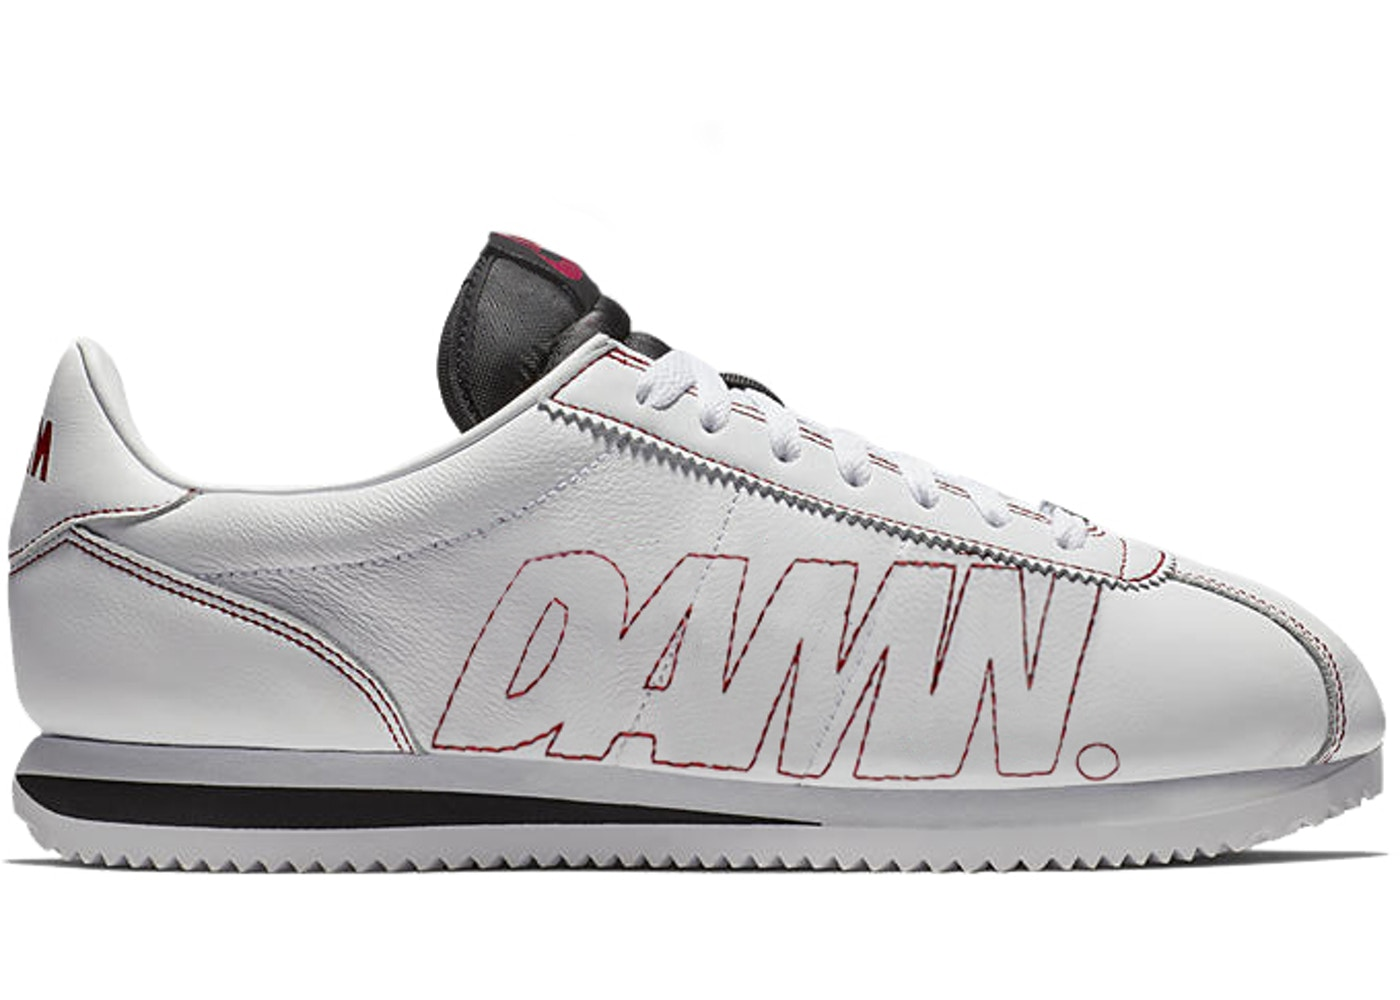 new style 72d61 b3d60 Nike Cortez Kenny 1 Kendrick Lamar Damn White Gym Red